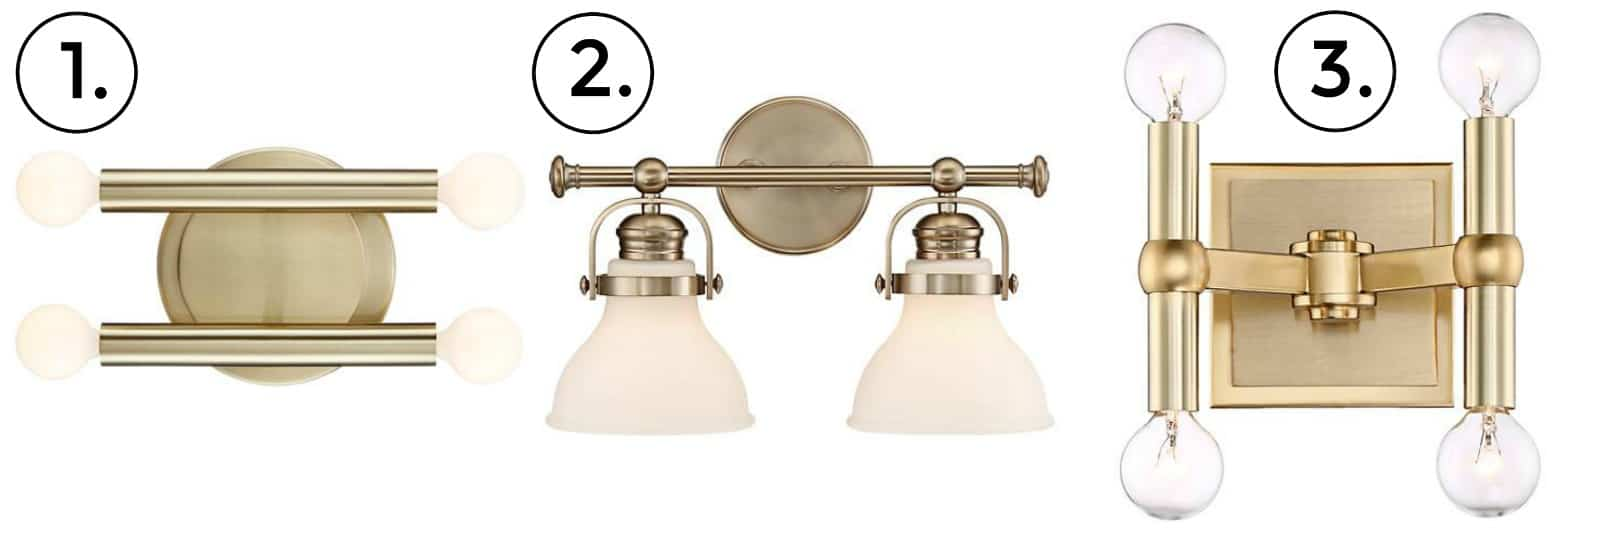 bathroom lamp options